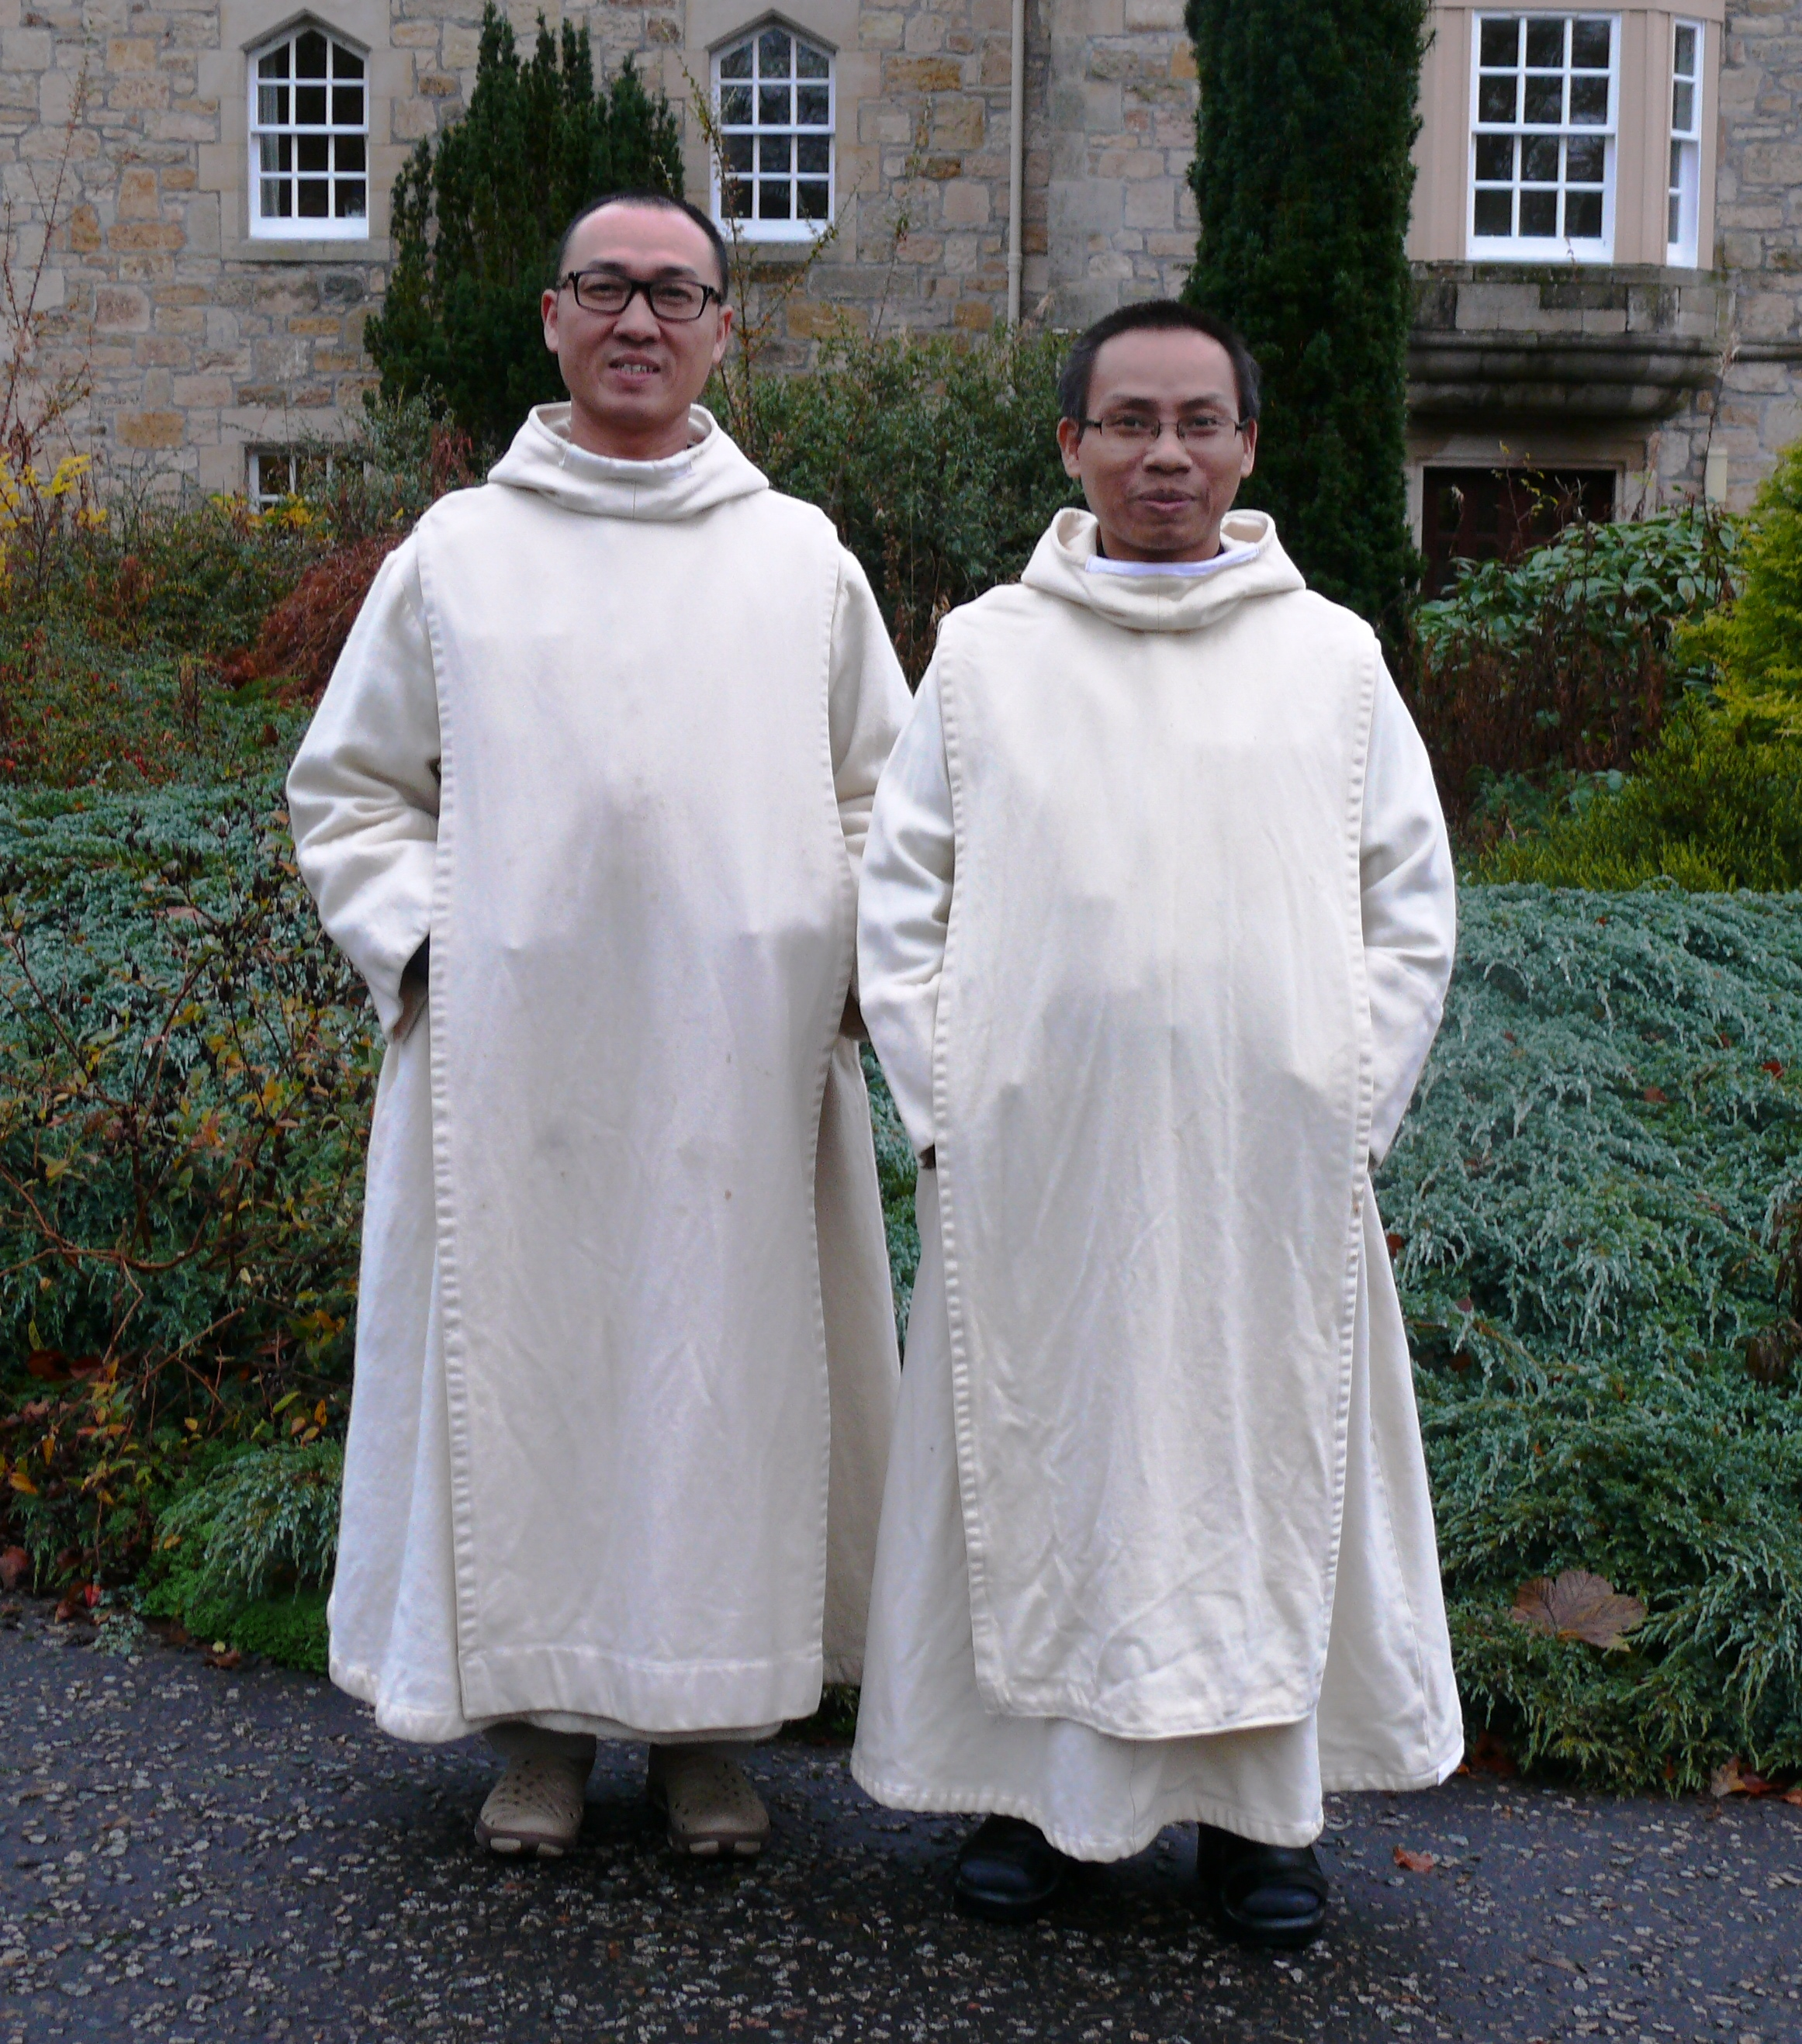 Br. Martin de Porres Pham Dinh Hung, and Br. John Bosco Nguyen Tran Anh Tu, from the monastery of Thien Phuoc in Vietnam